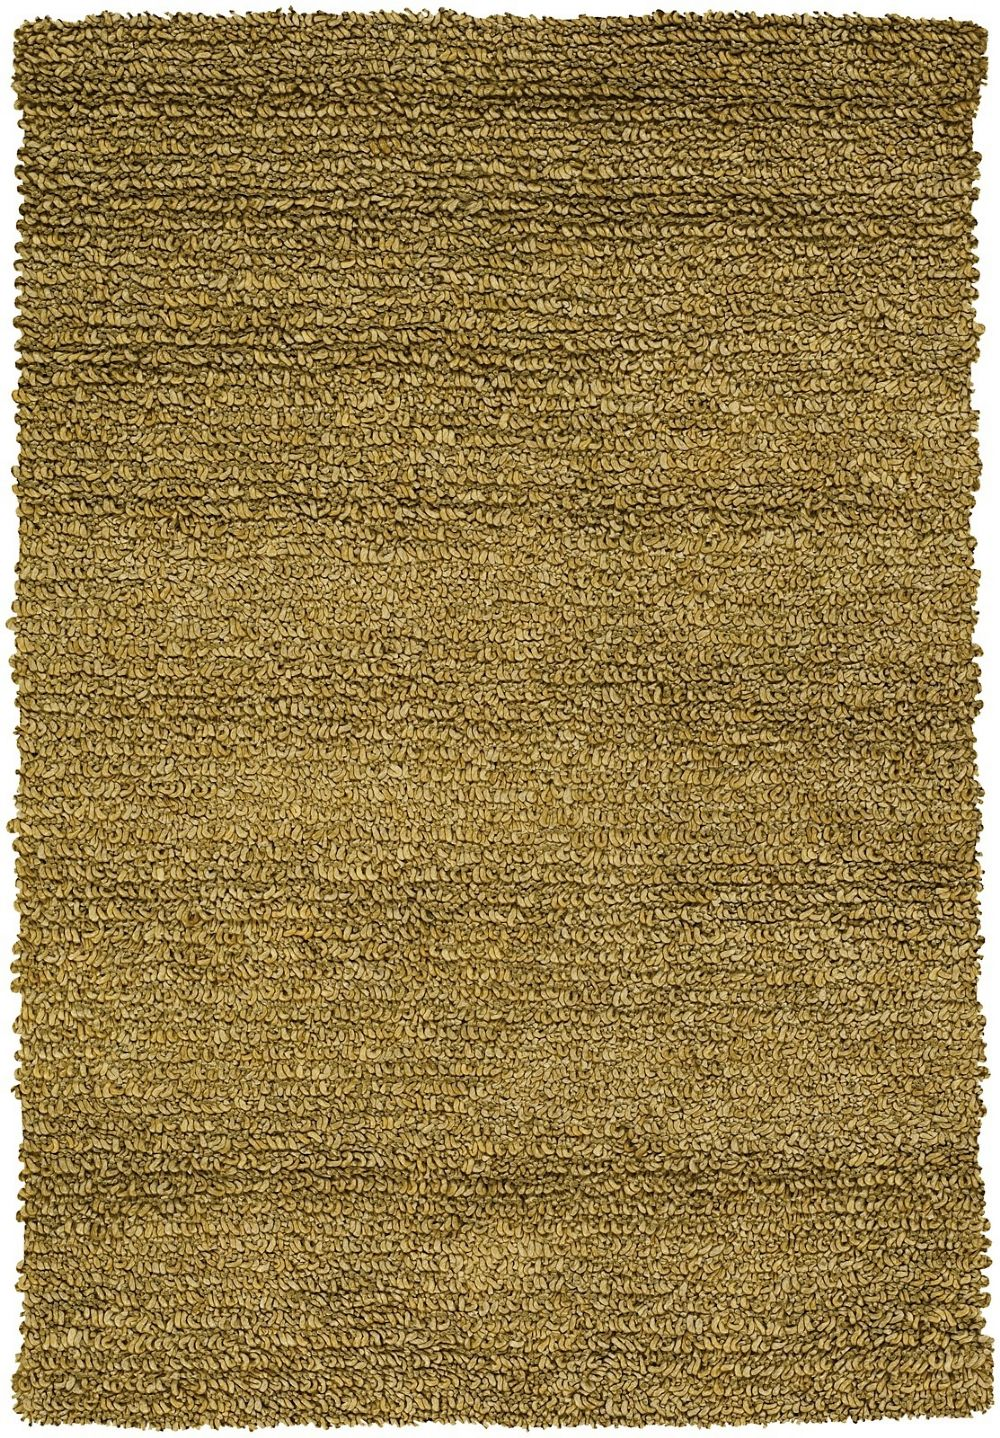 chandra zeal contemporary area rug collection